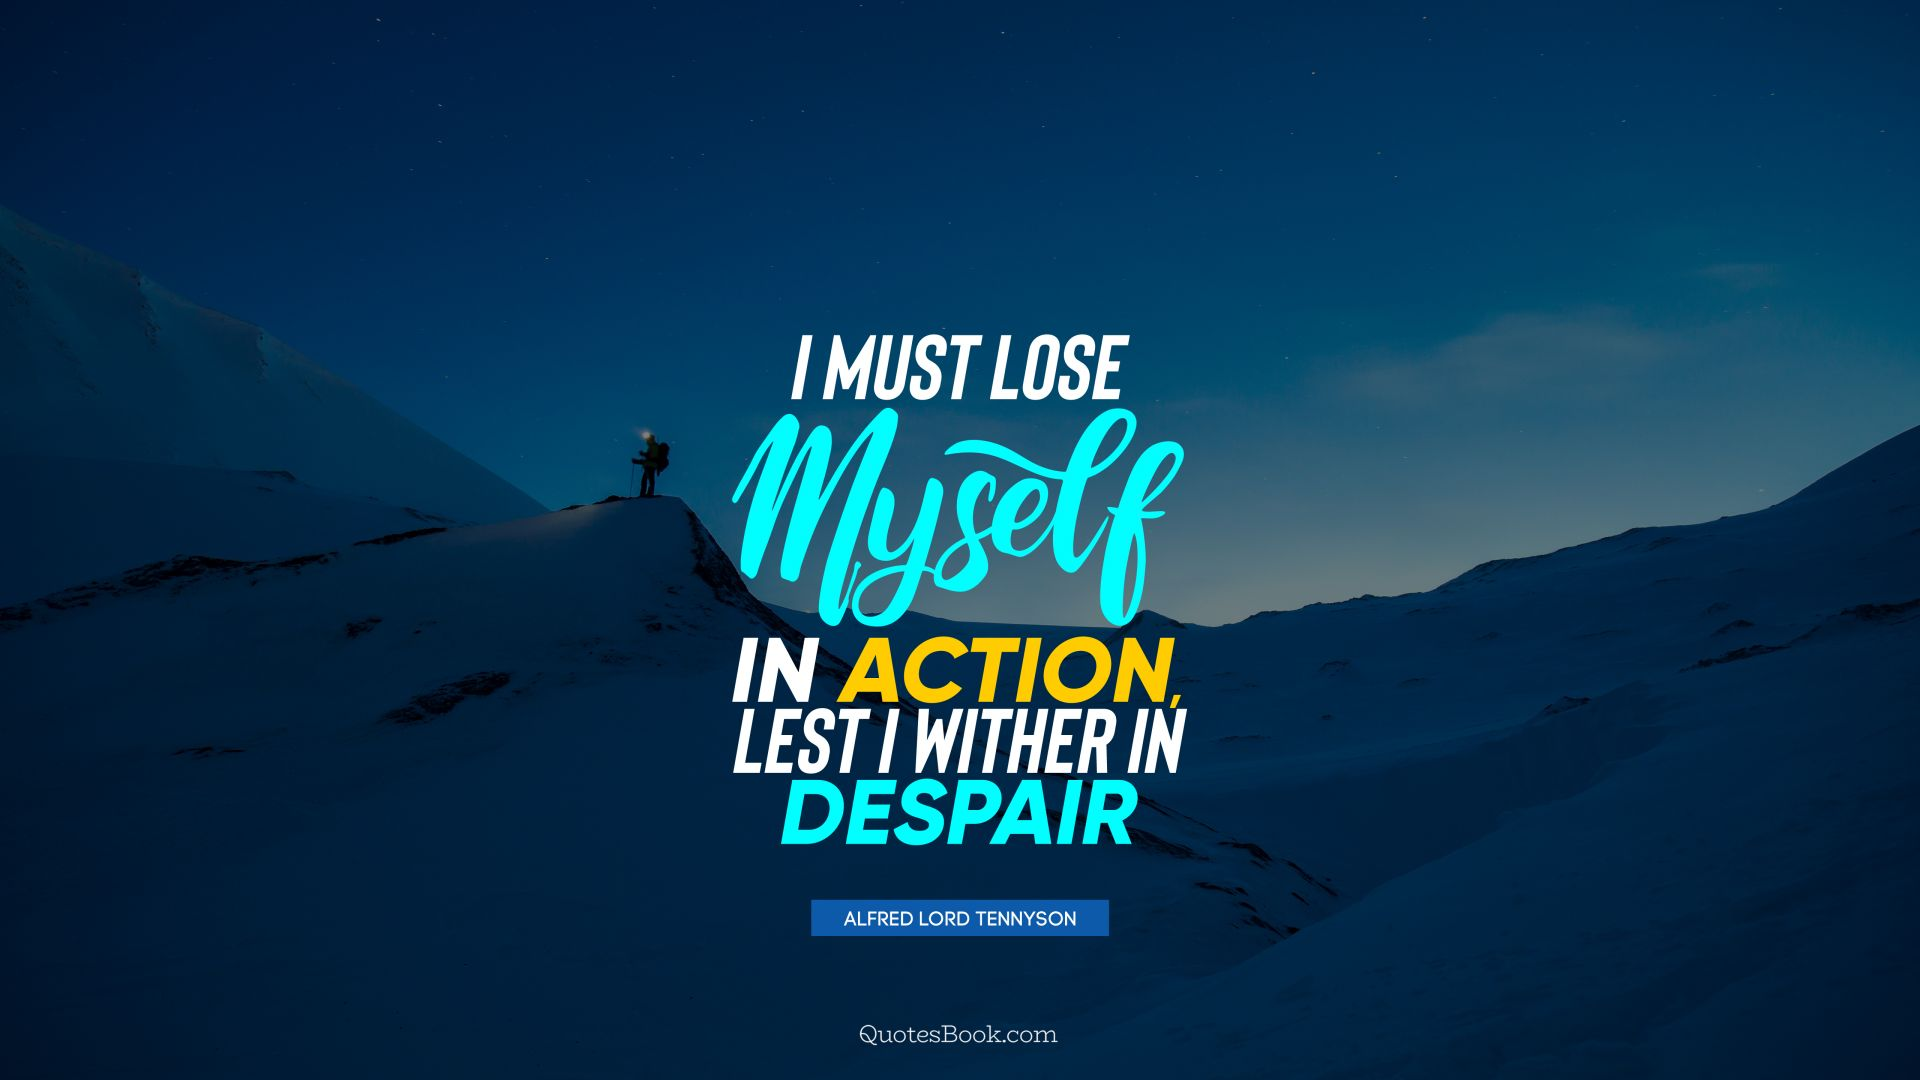 I must lose myself in action, lest I wither in despair. - Quote by Alfred Lord Tennyson